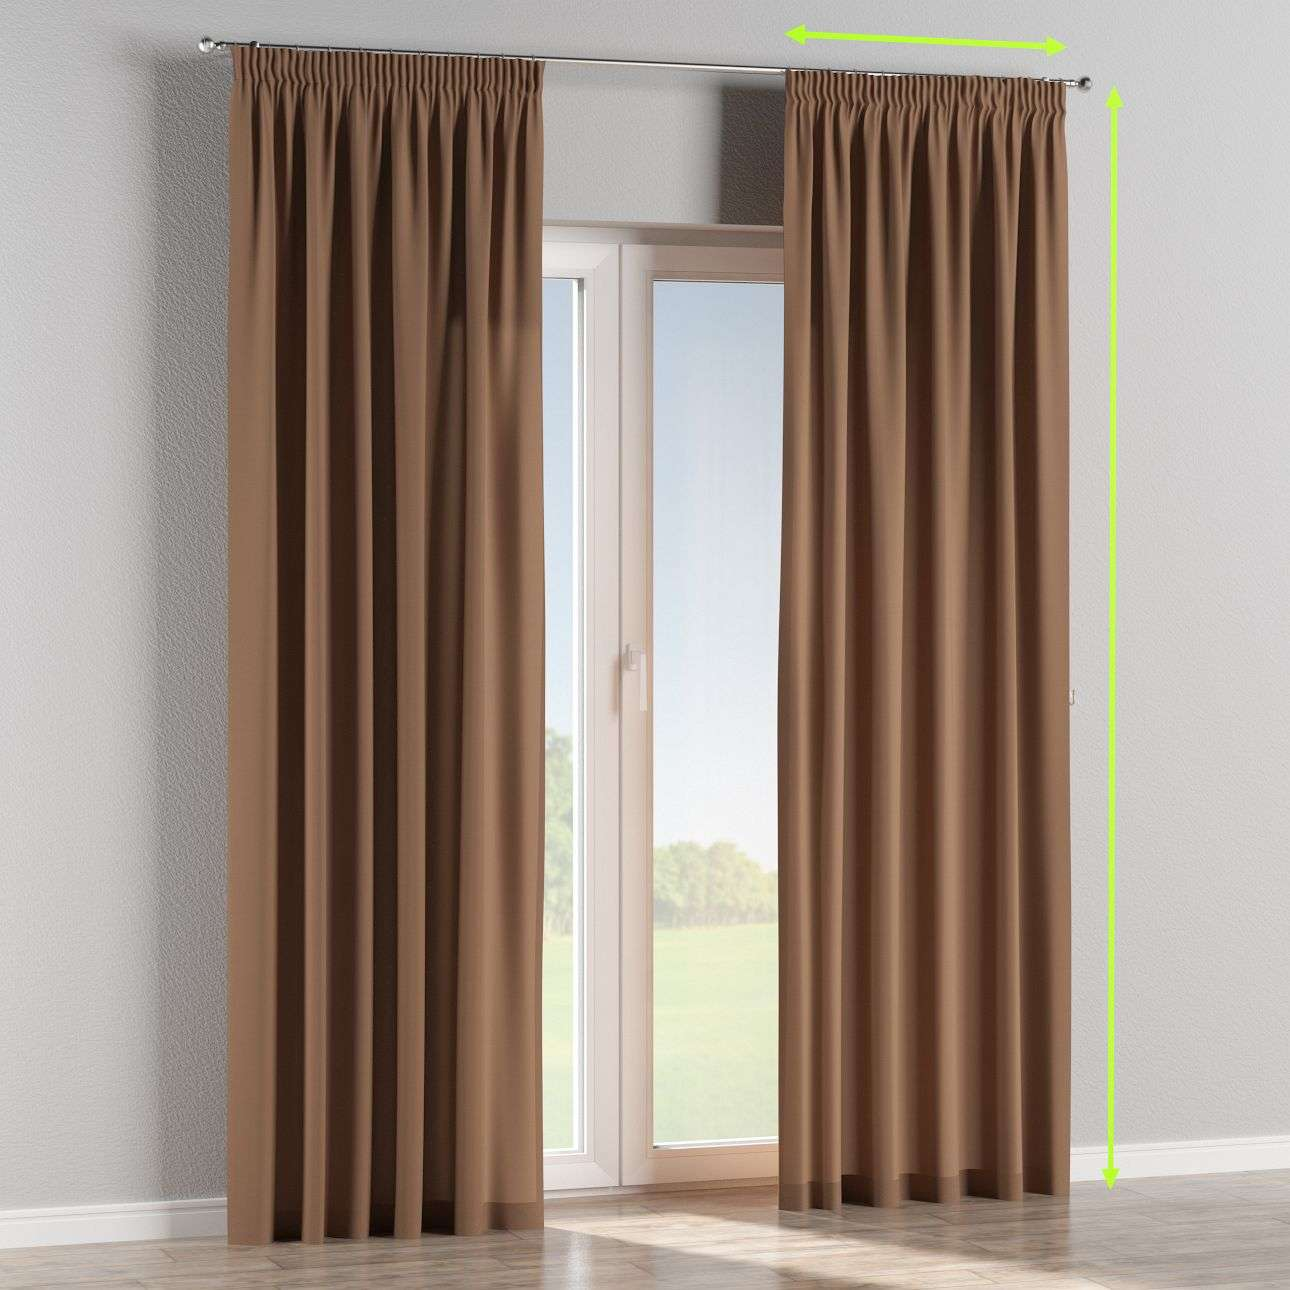 Pencil pleat lined curtains in collection Cotton Panama, fabric: 702-02